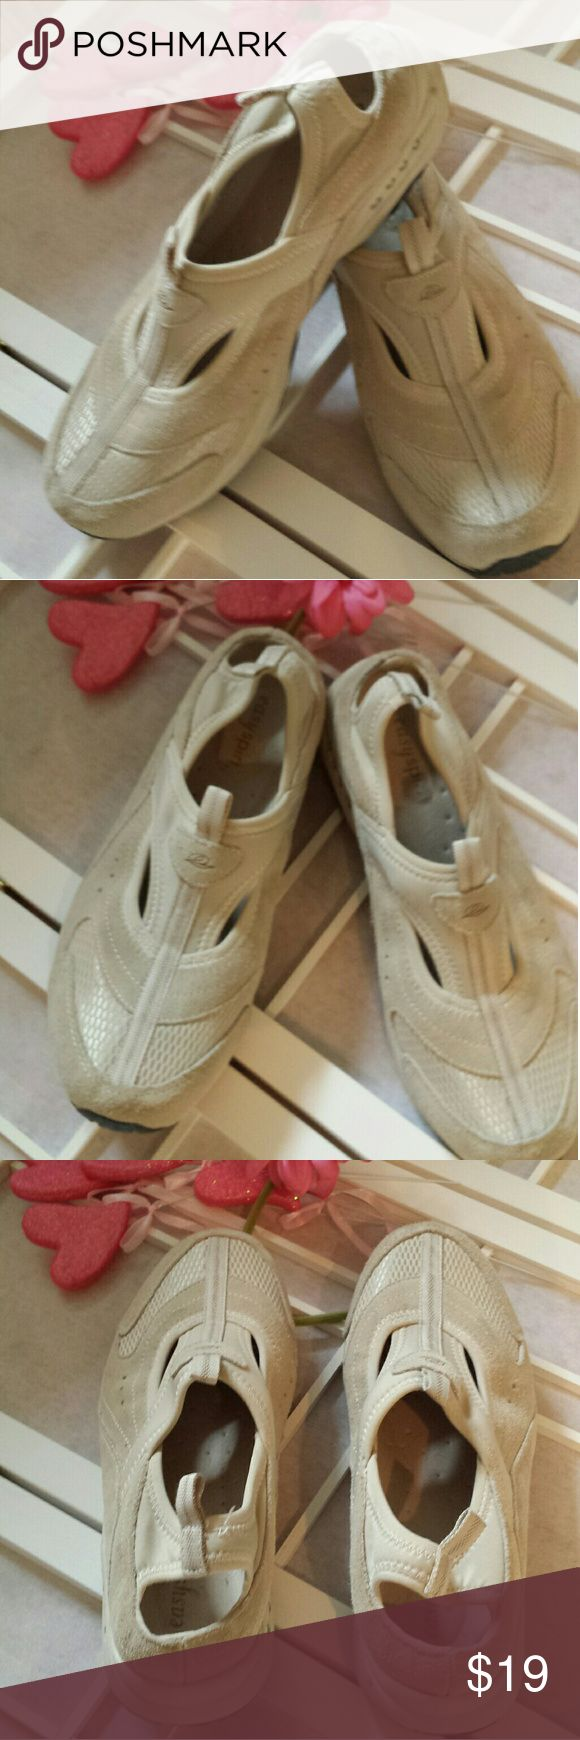 Women's Slip on Sling Back Easy Spirit  size 9.5 Women's size 9.5 Easy Spirit Slip on Sling back sneakers Used, but in great condition Shoes Athletic Shoes